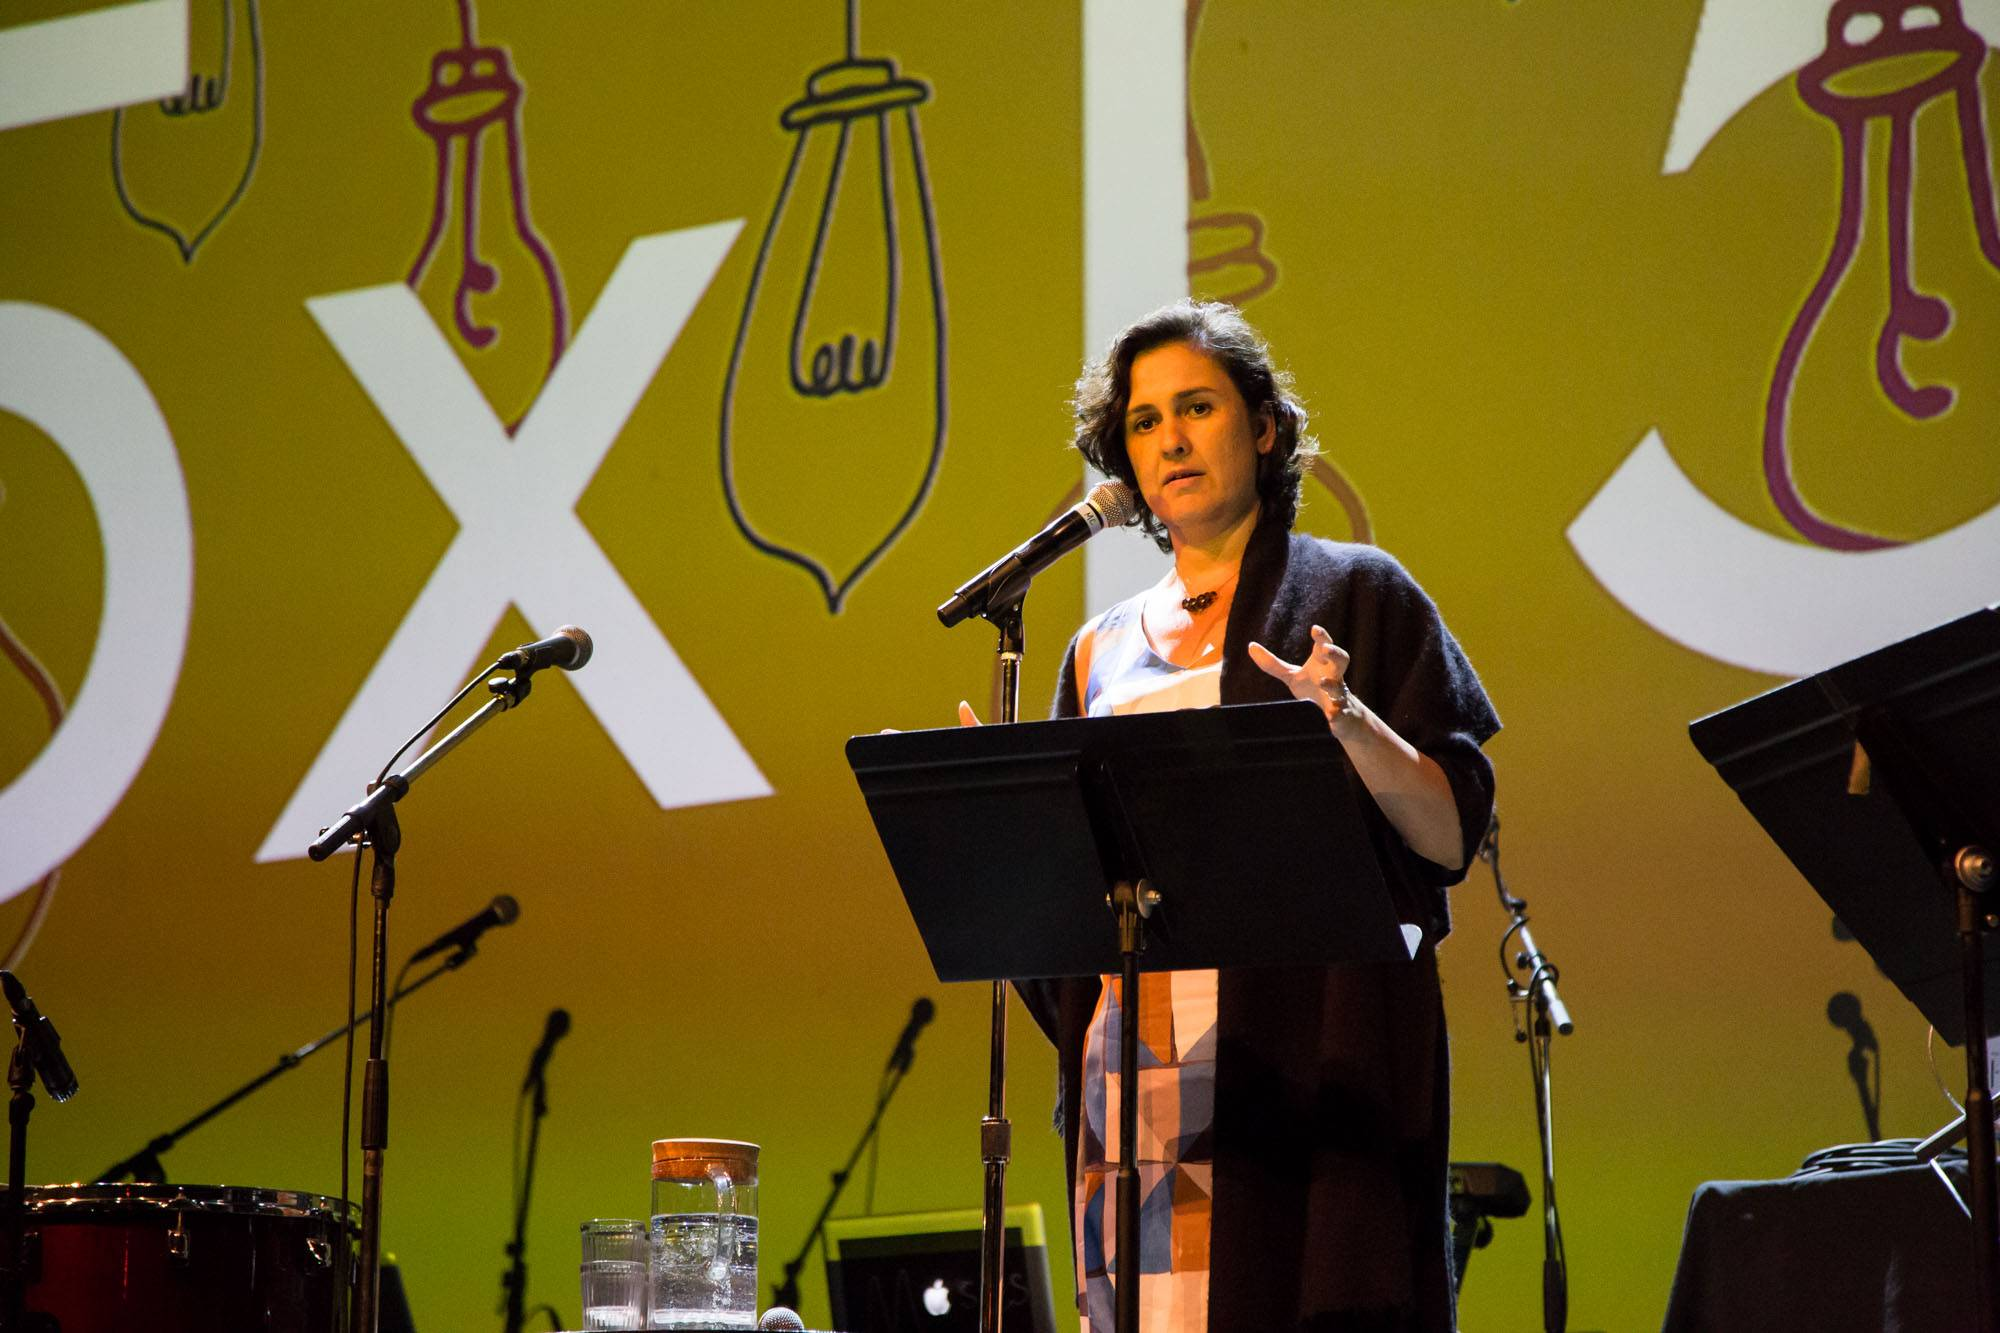 Kamila Shamsie speaking at the Vogue Theatre, Vancouver, July 15 2017. Kirk Chantraine photo.